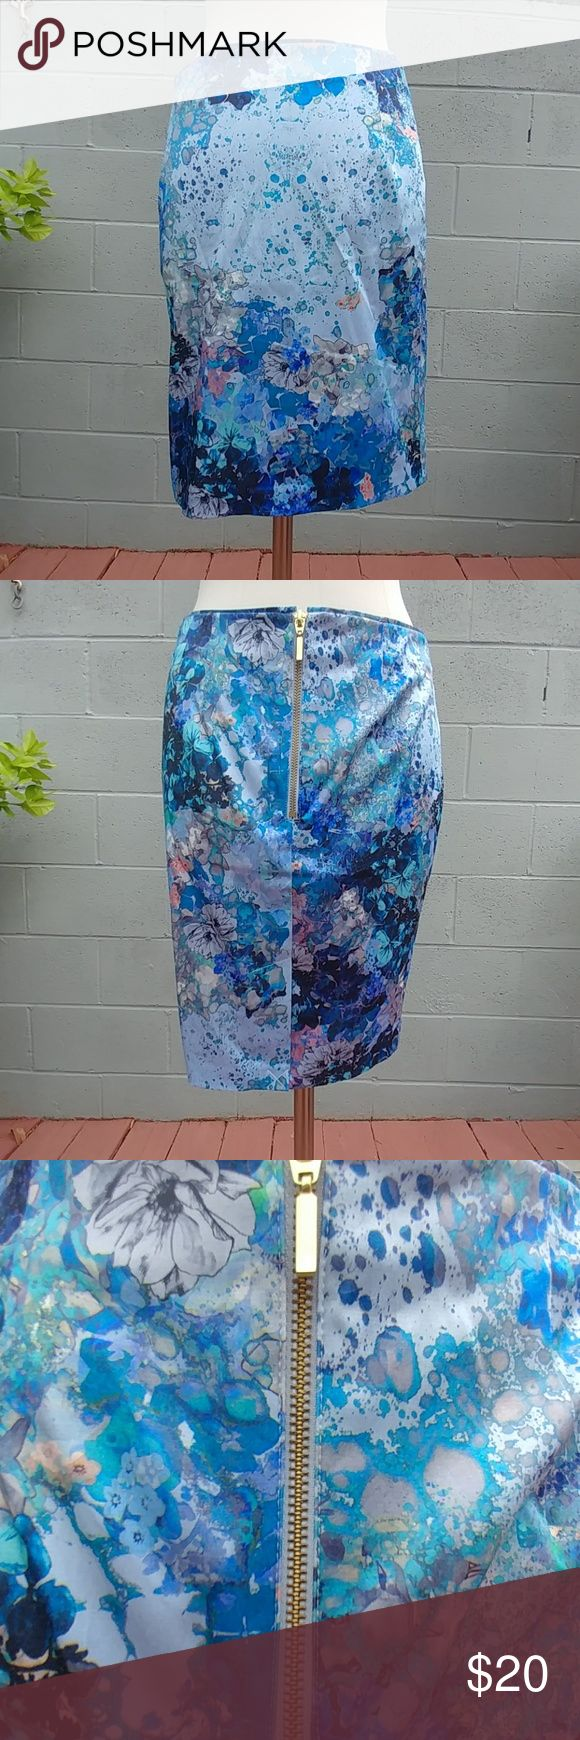 ✨sale✨ H&M Floral Pencil Skirt Cute skirt purchased but never worn as seen in the 4th picture by the thread holding the back together.   Made out of: 53% polyester 44% cotton 3% elaatane H&M Skirts